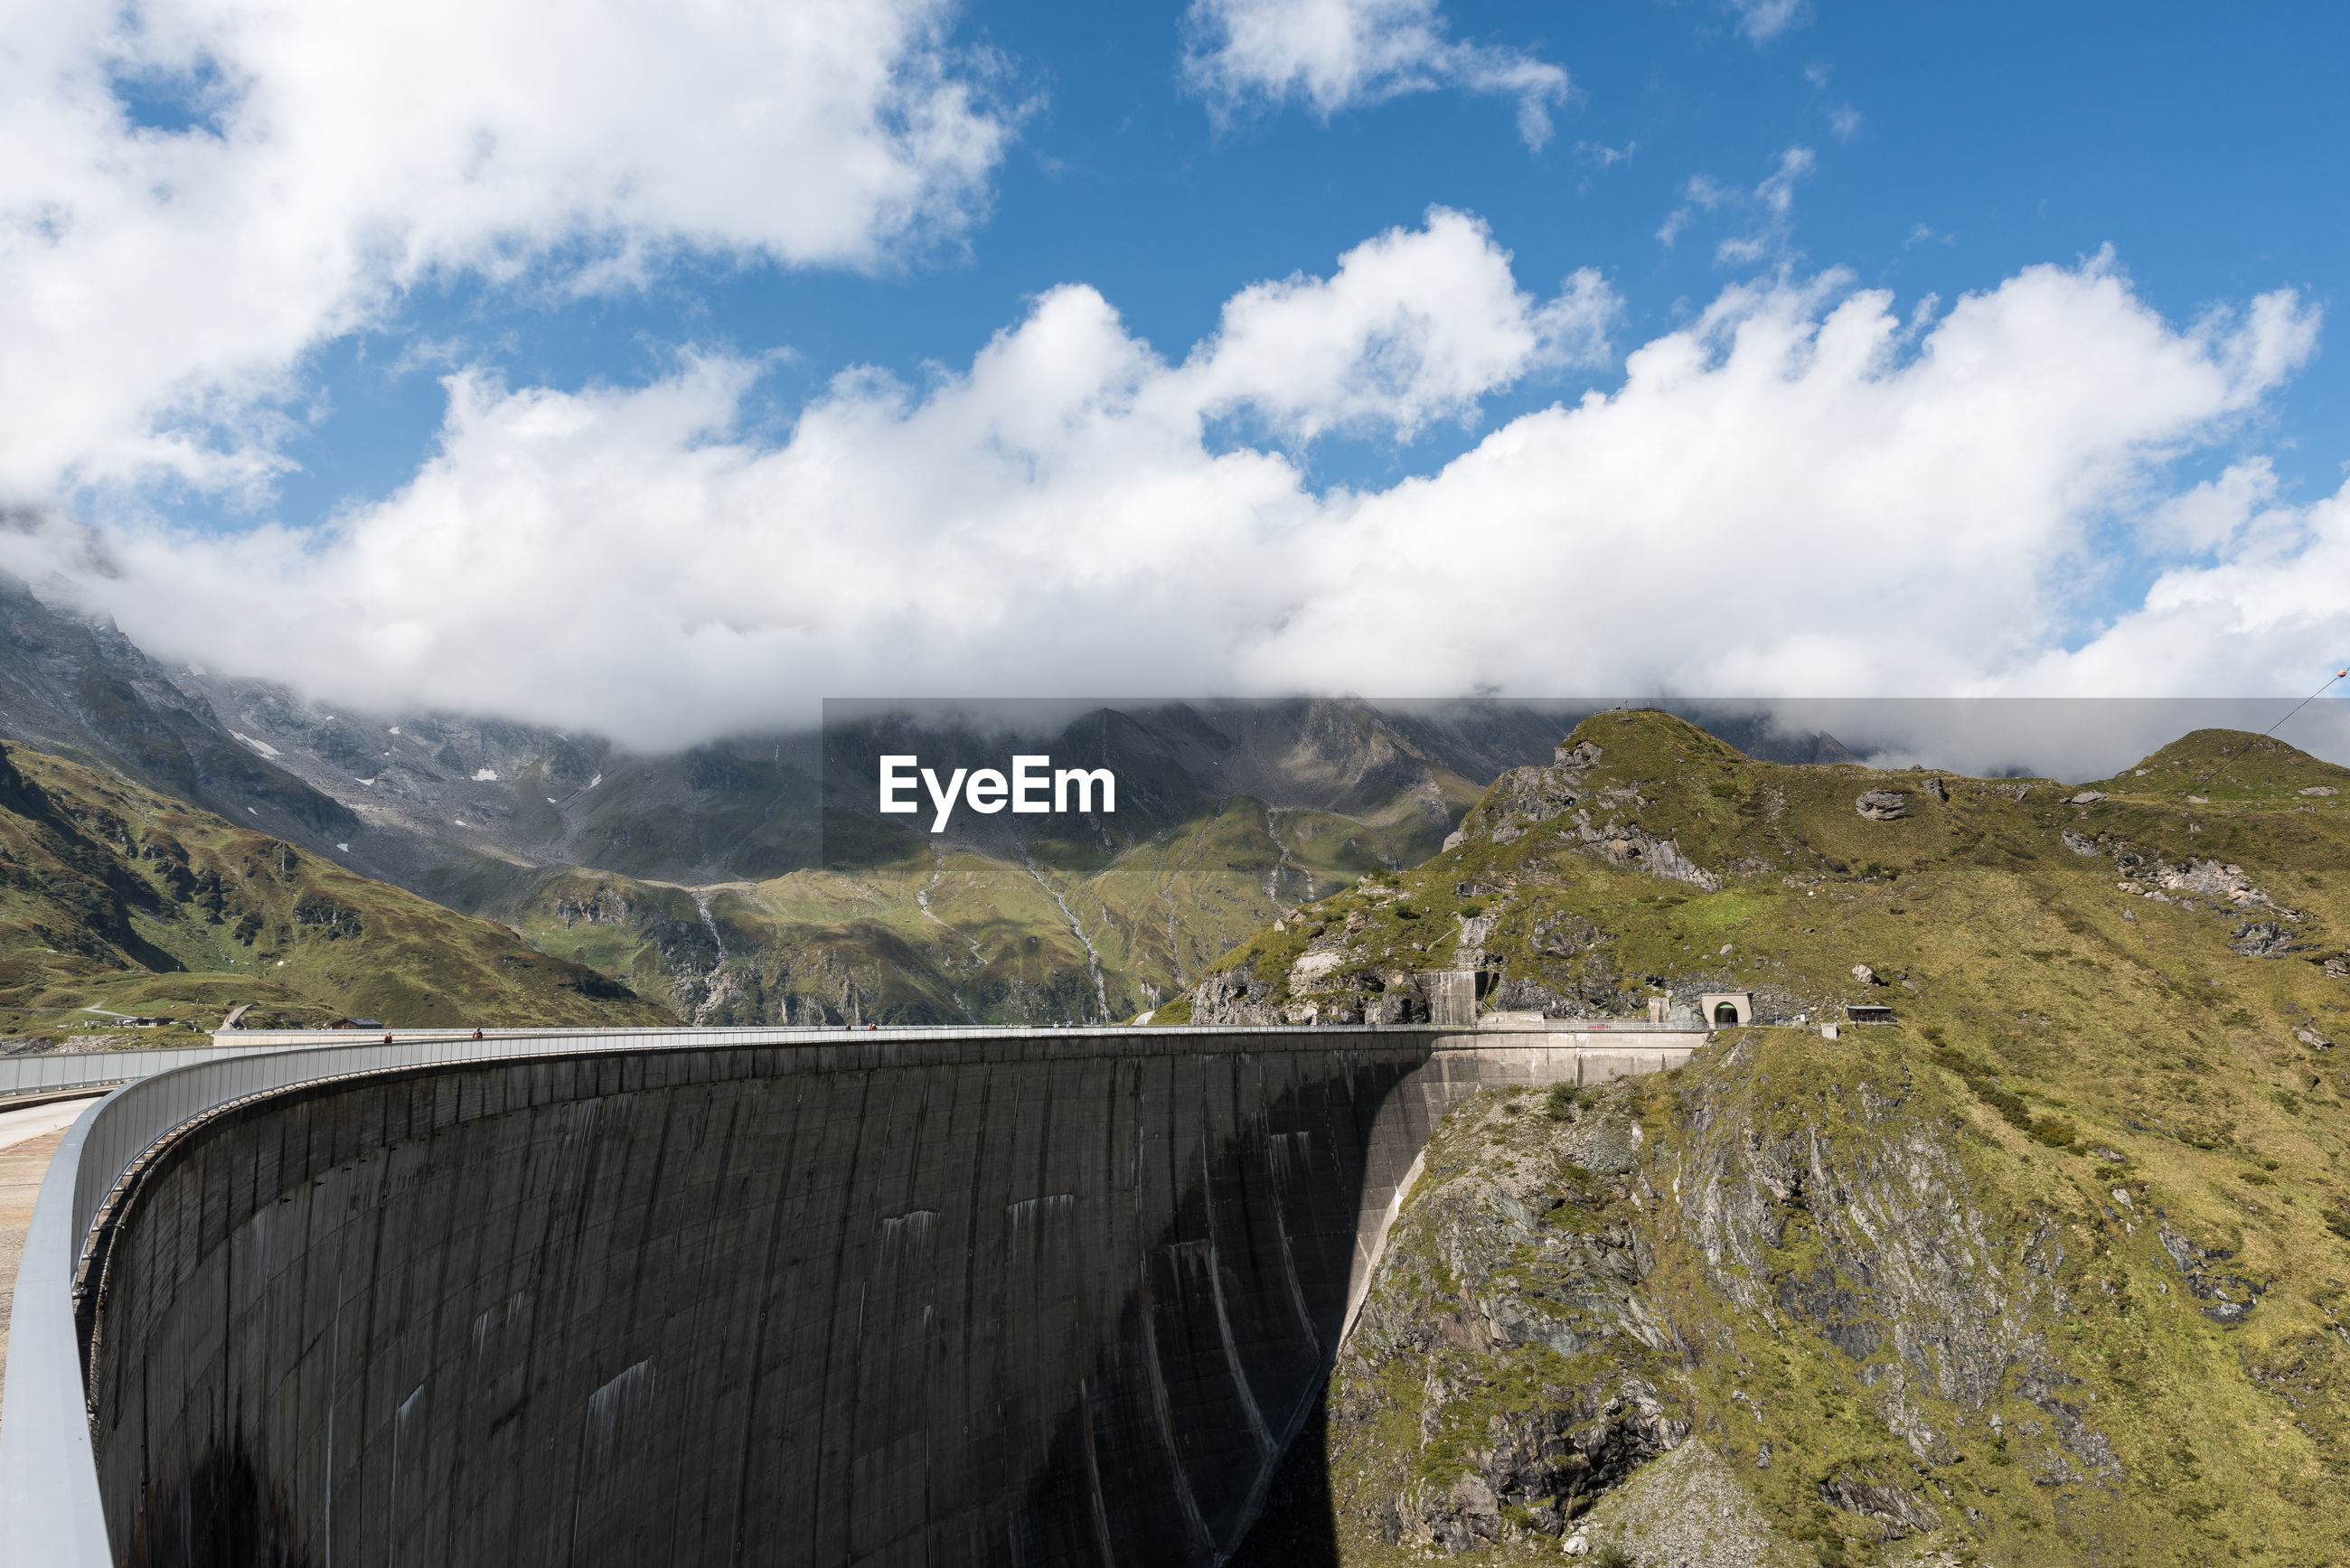 Scenic view of dam and mountains against cloudy sky